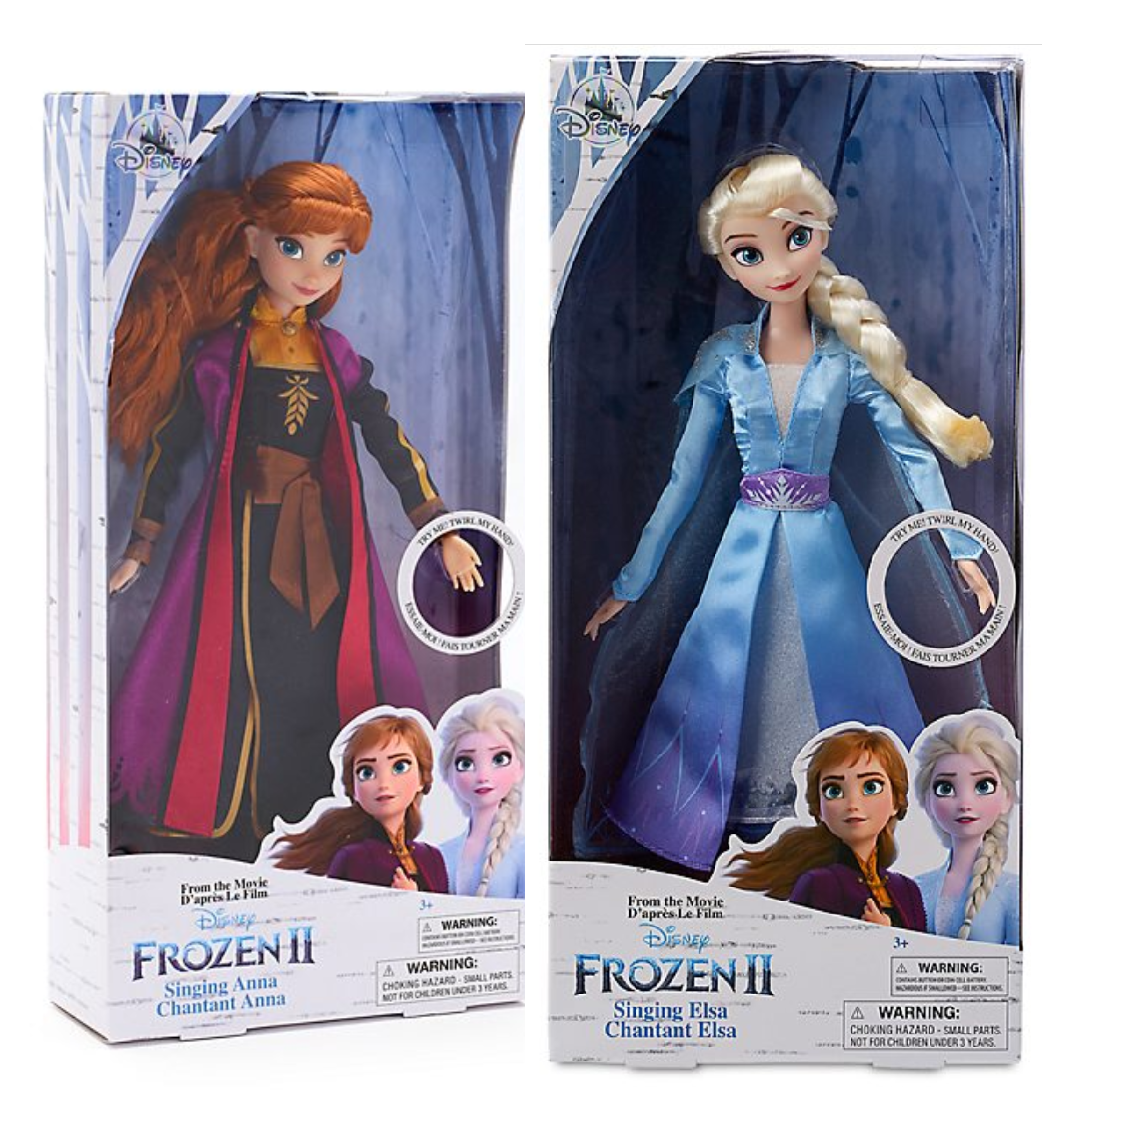 2020 NEW Disney <font><b>Frozen</b></font> <font><b>2</b></font> Elsa & Anna PVC Action <font><b>Figure</b></font> Olaf Kristoff Sven Anime Dolls Figurines Snow Queen Toy high quality gift image